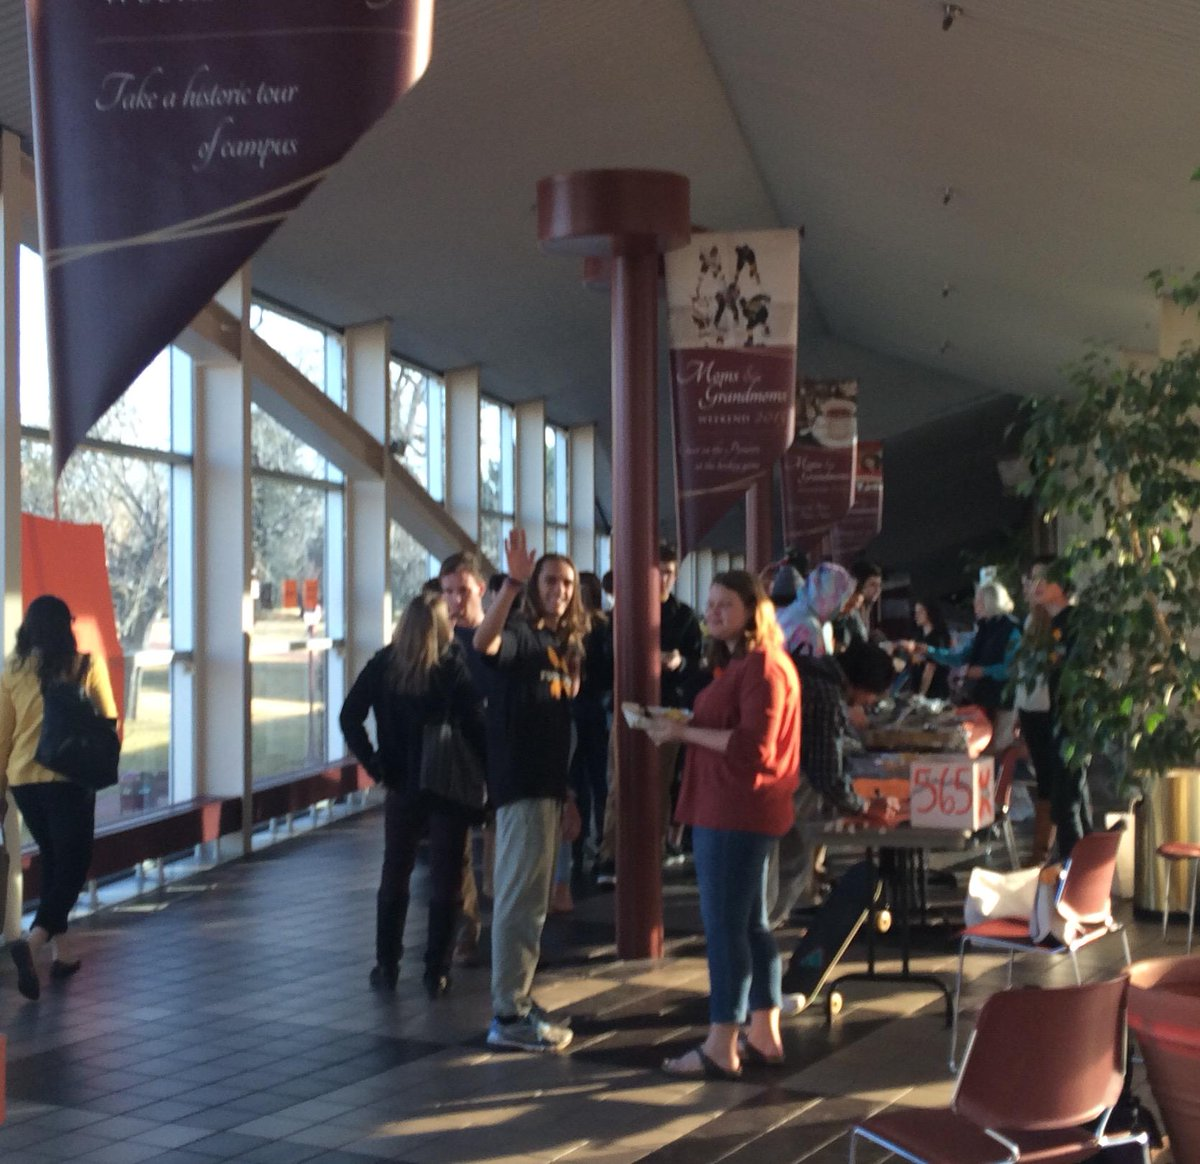 Another poor showing. Only 15 activists showed up to DU #divest event. #copolitics @350 http://t.co/cHxiDr83Ke